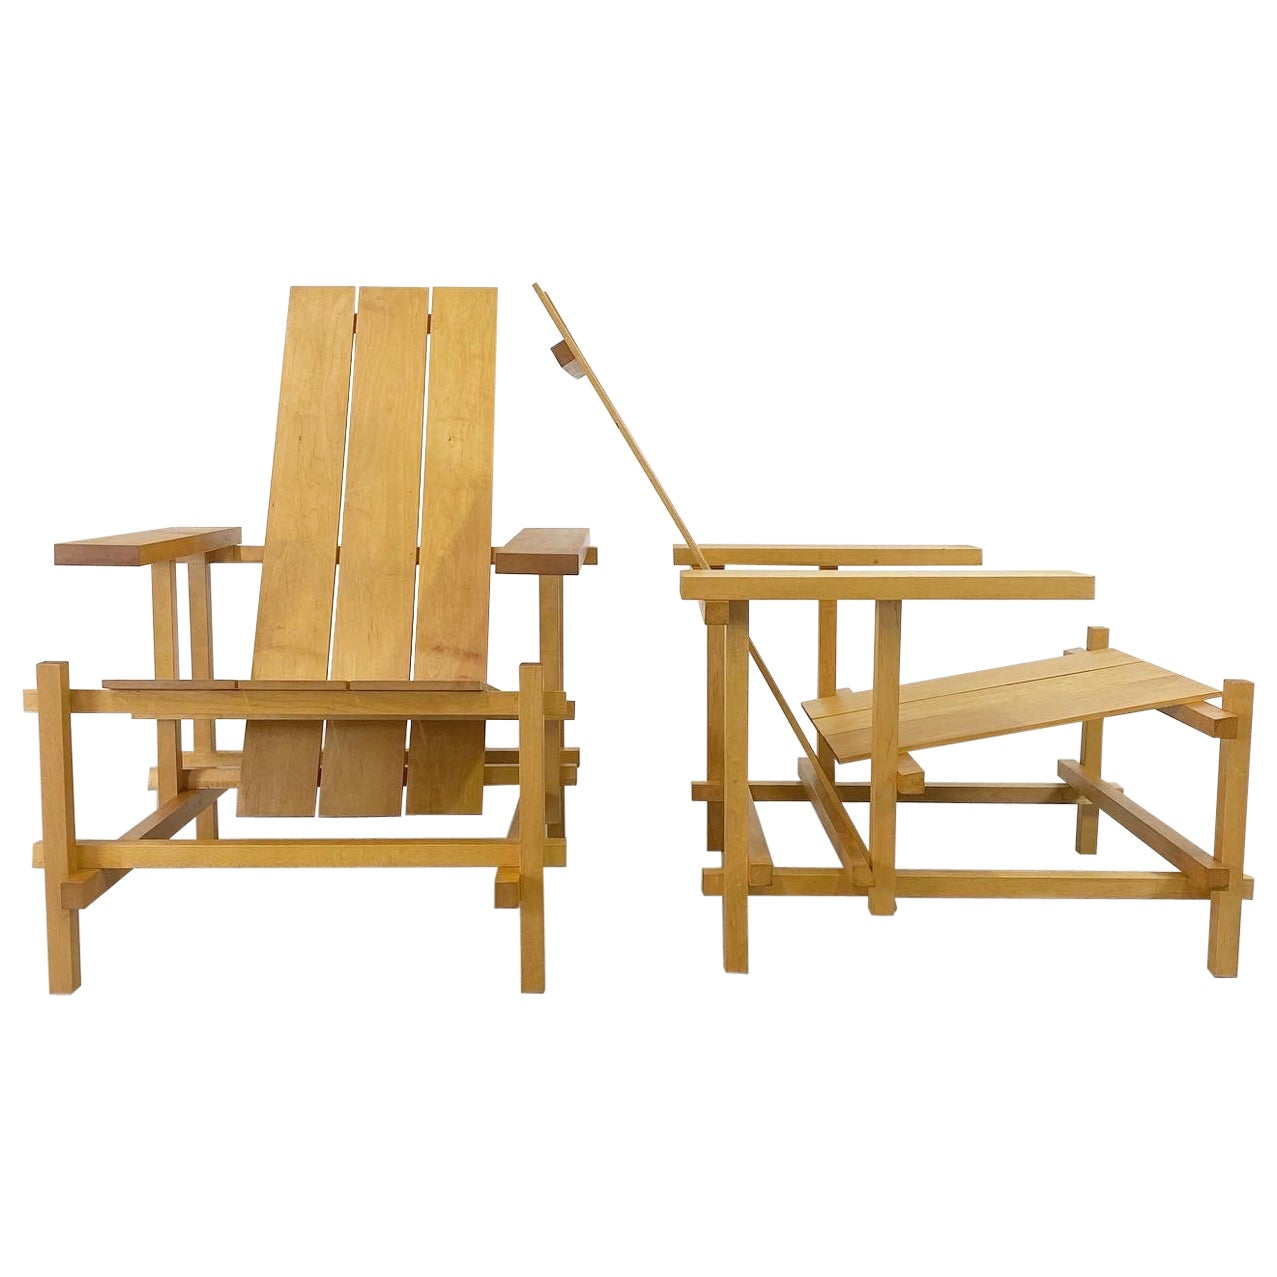 Gerrit Rietveld Style Lounge Chairs, a Pair